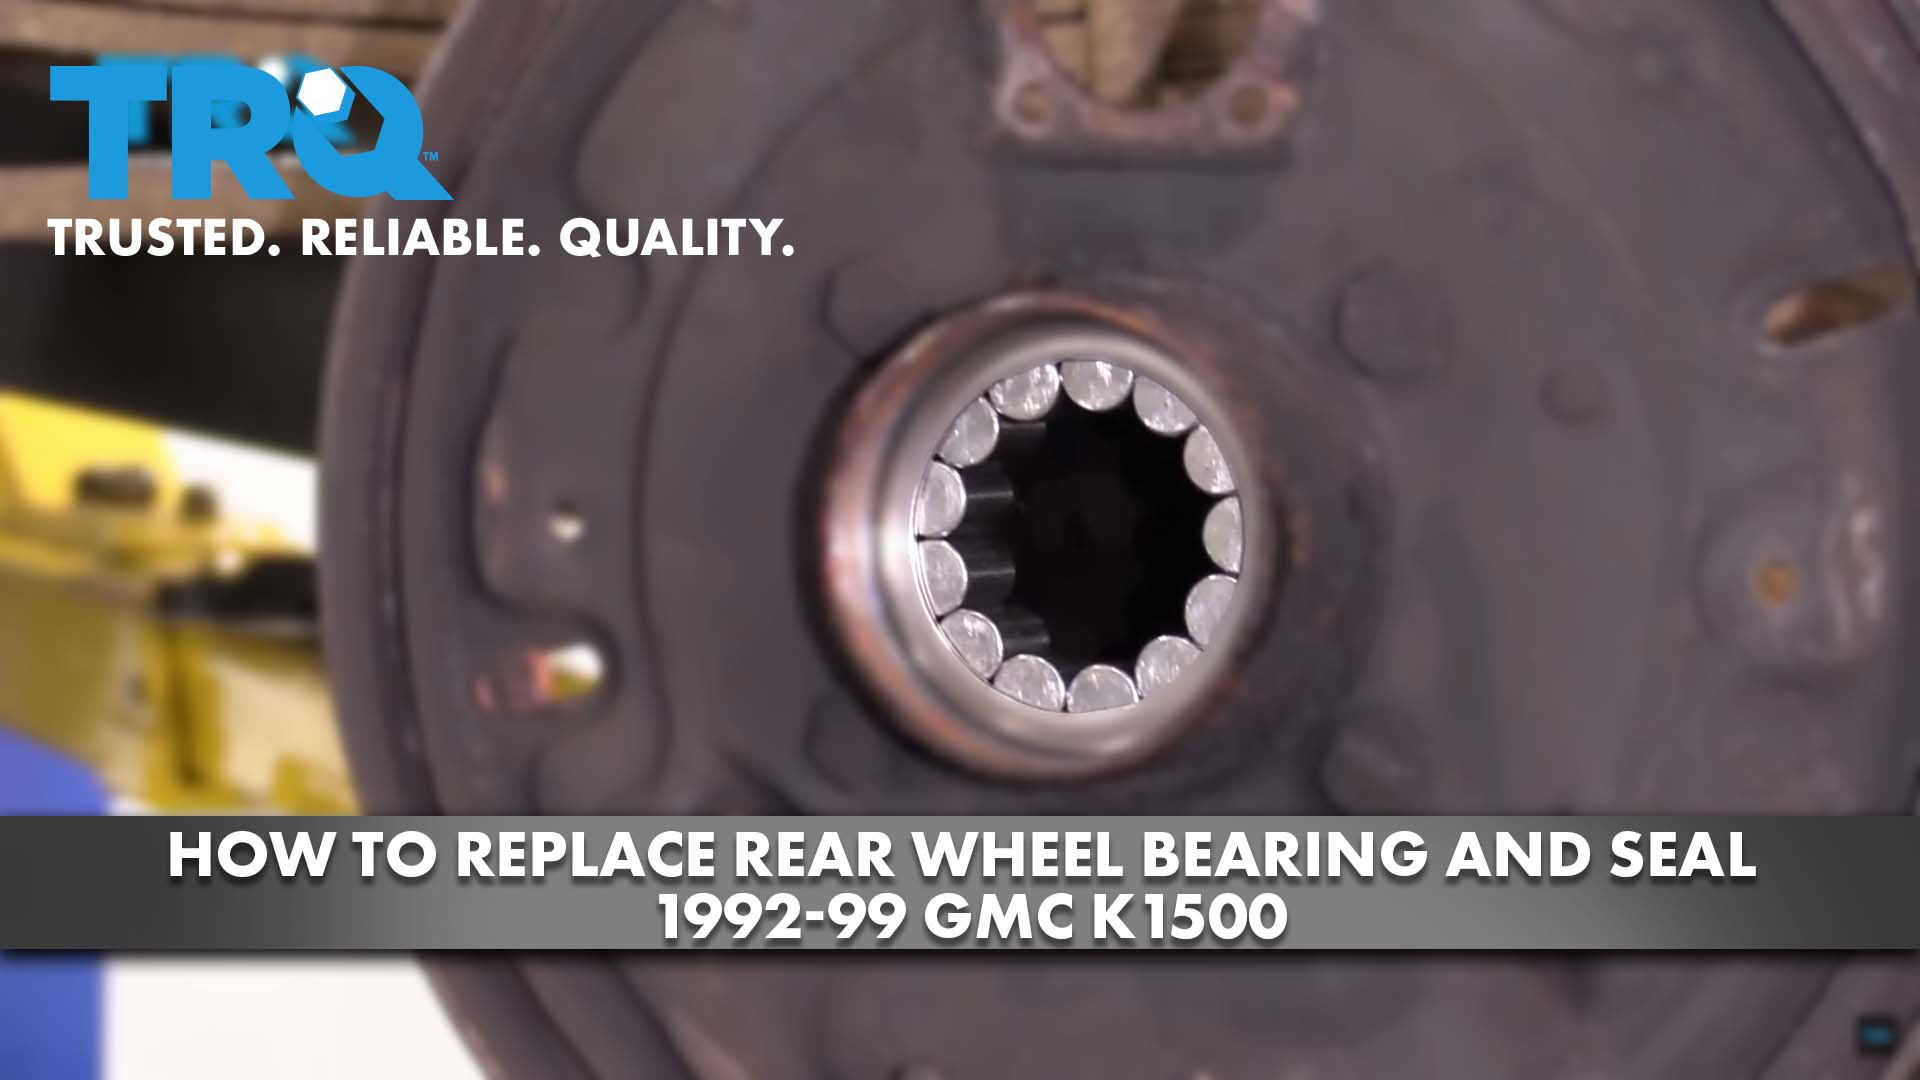 How To Replace Rear Wheel Bearing and Seal 1992-99 GMC K1500